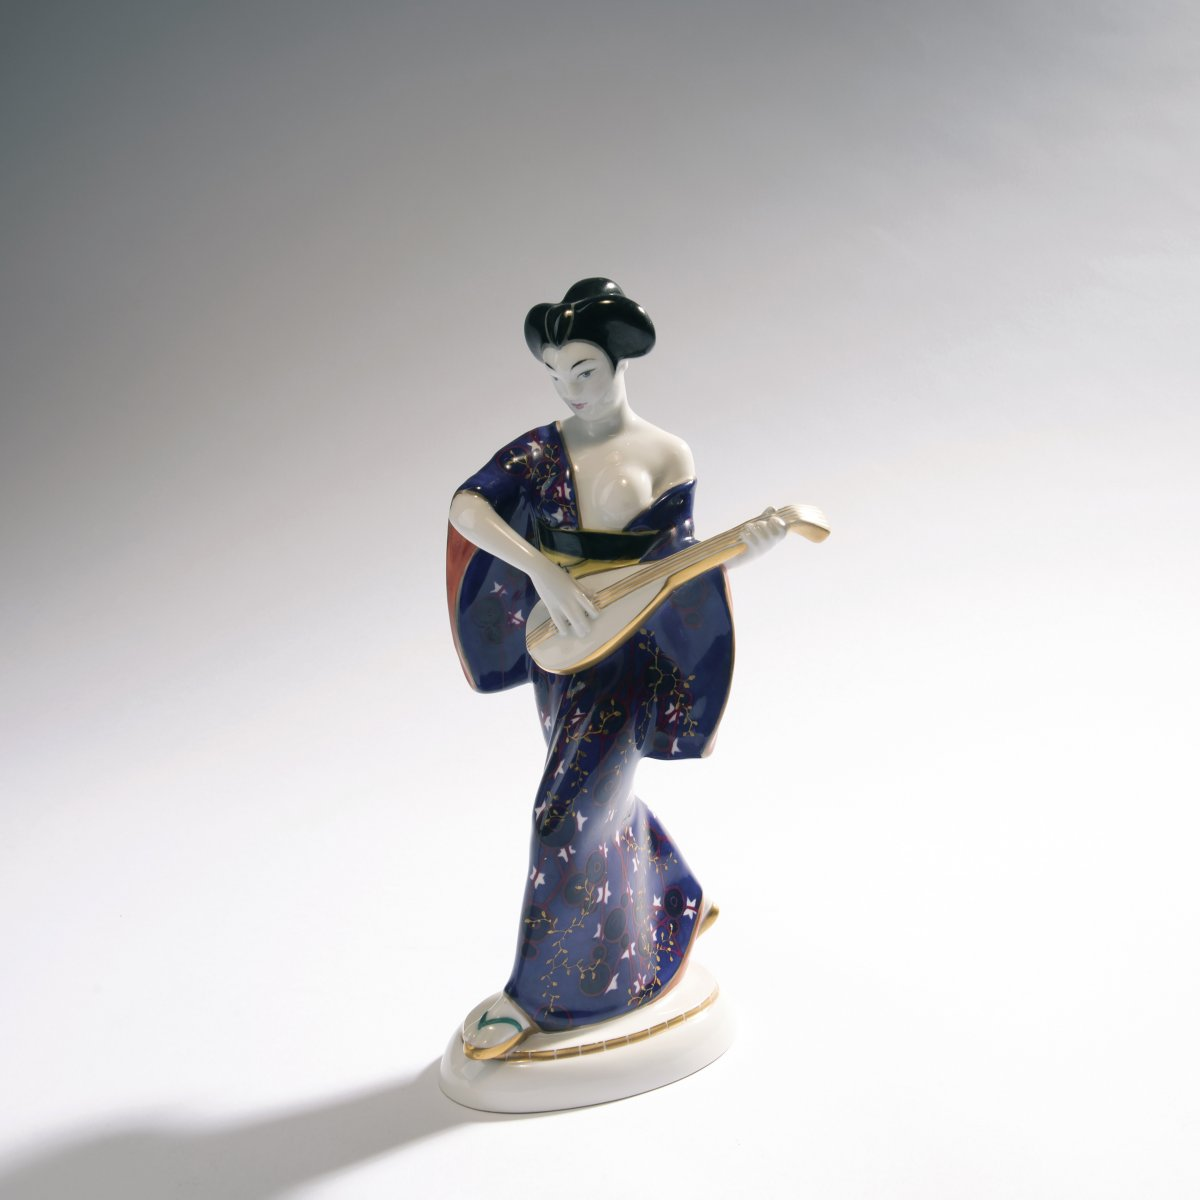 Adolph Amberg, 'Japanese woman', 1909'Japanese woman', 1909H. 27 cm. Made by StPM Berlin, 1924.